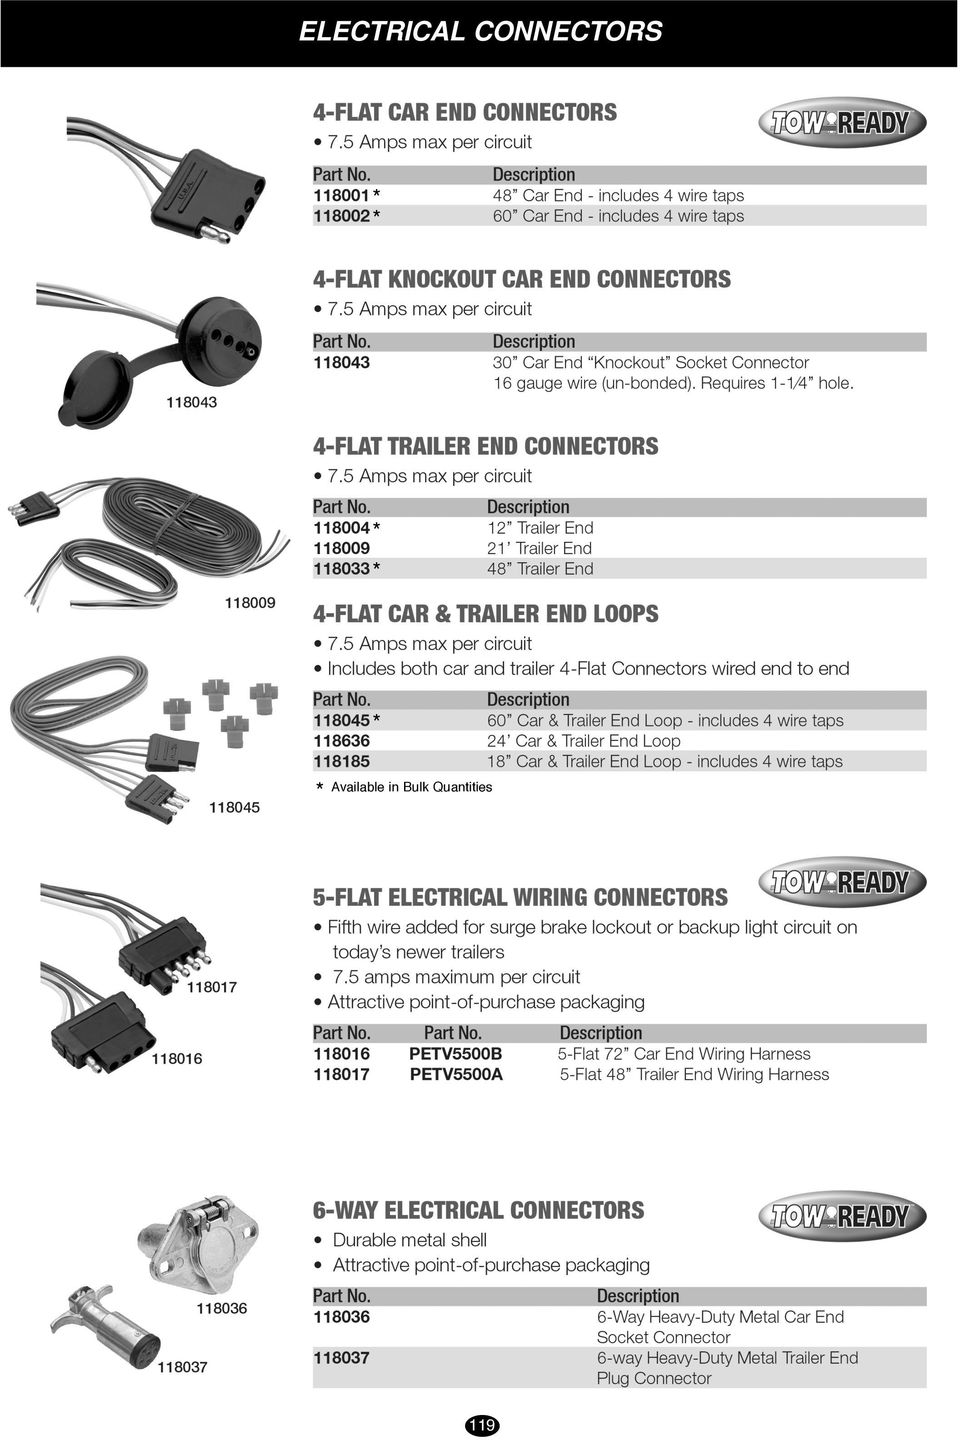 Electrical Connectors Pdf Wire Flat Connector Vehicle To Trailer Wiring 4 5 Packaged Part No Bulk Description 6 Way Non Molded With 3 Foot